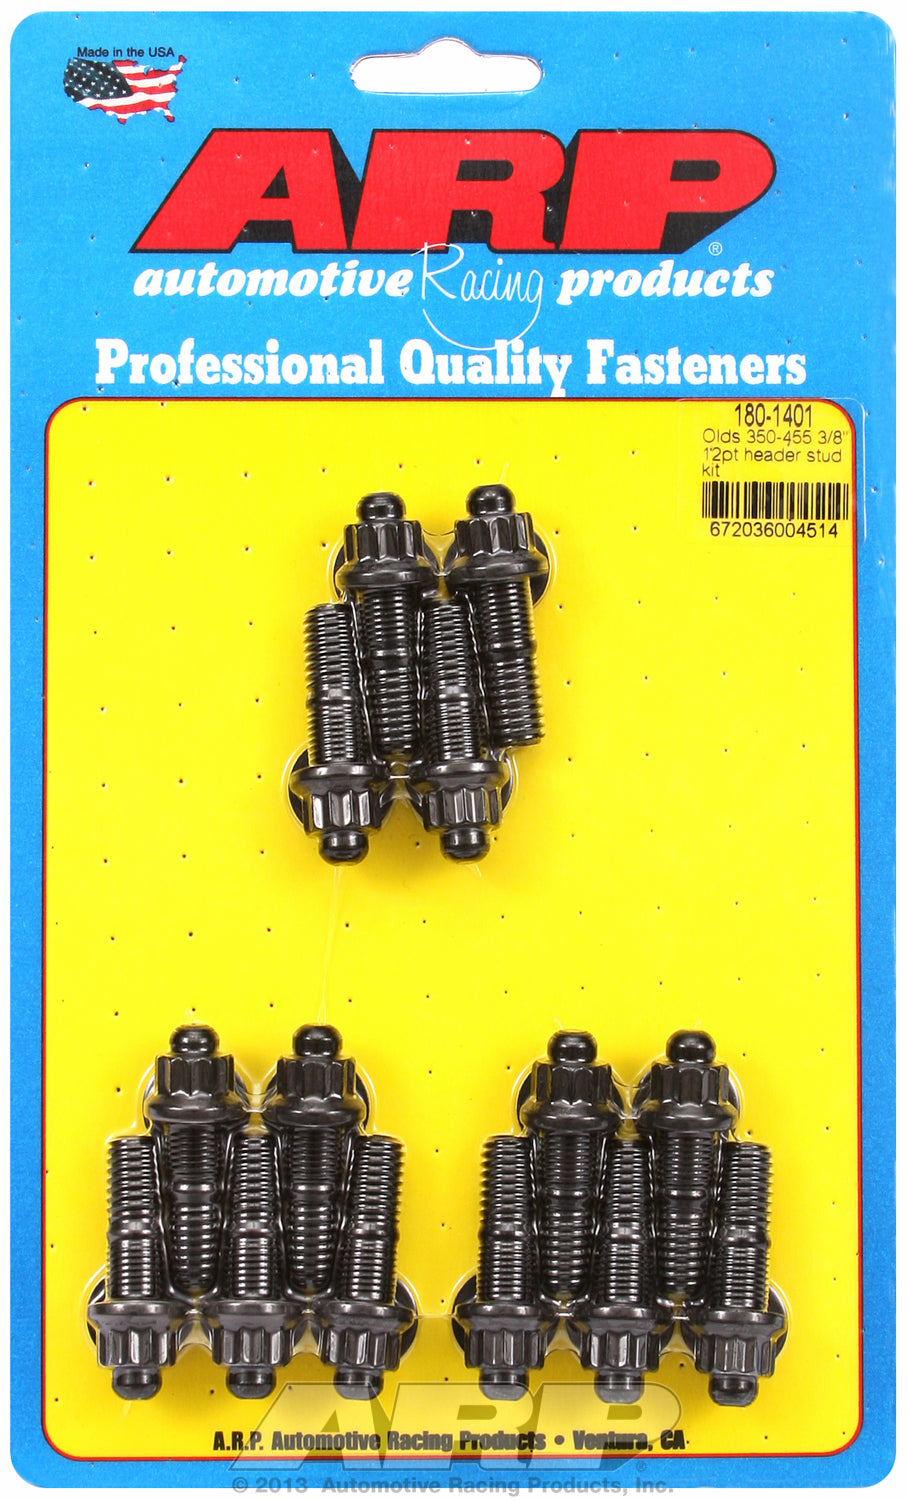 Header Stud Kit for Oldsmobile 330-455 cid Black Oxide 12-Pt Head